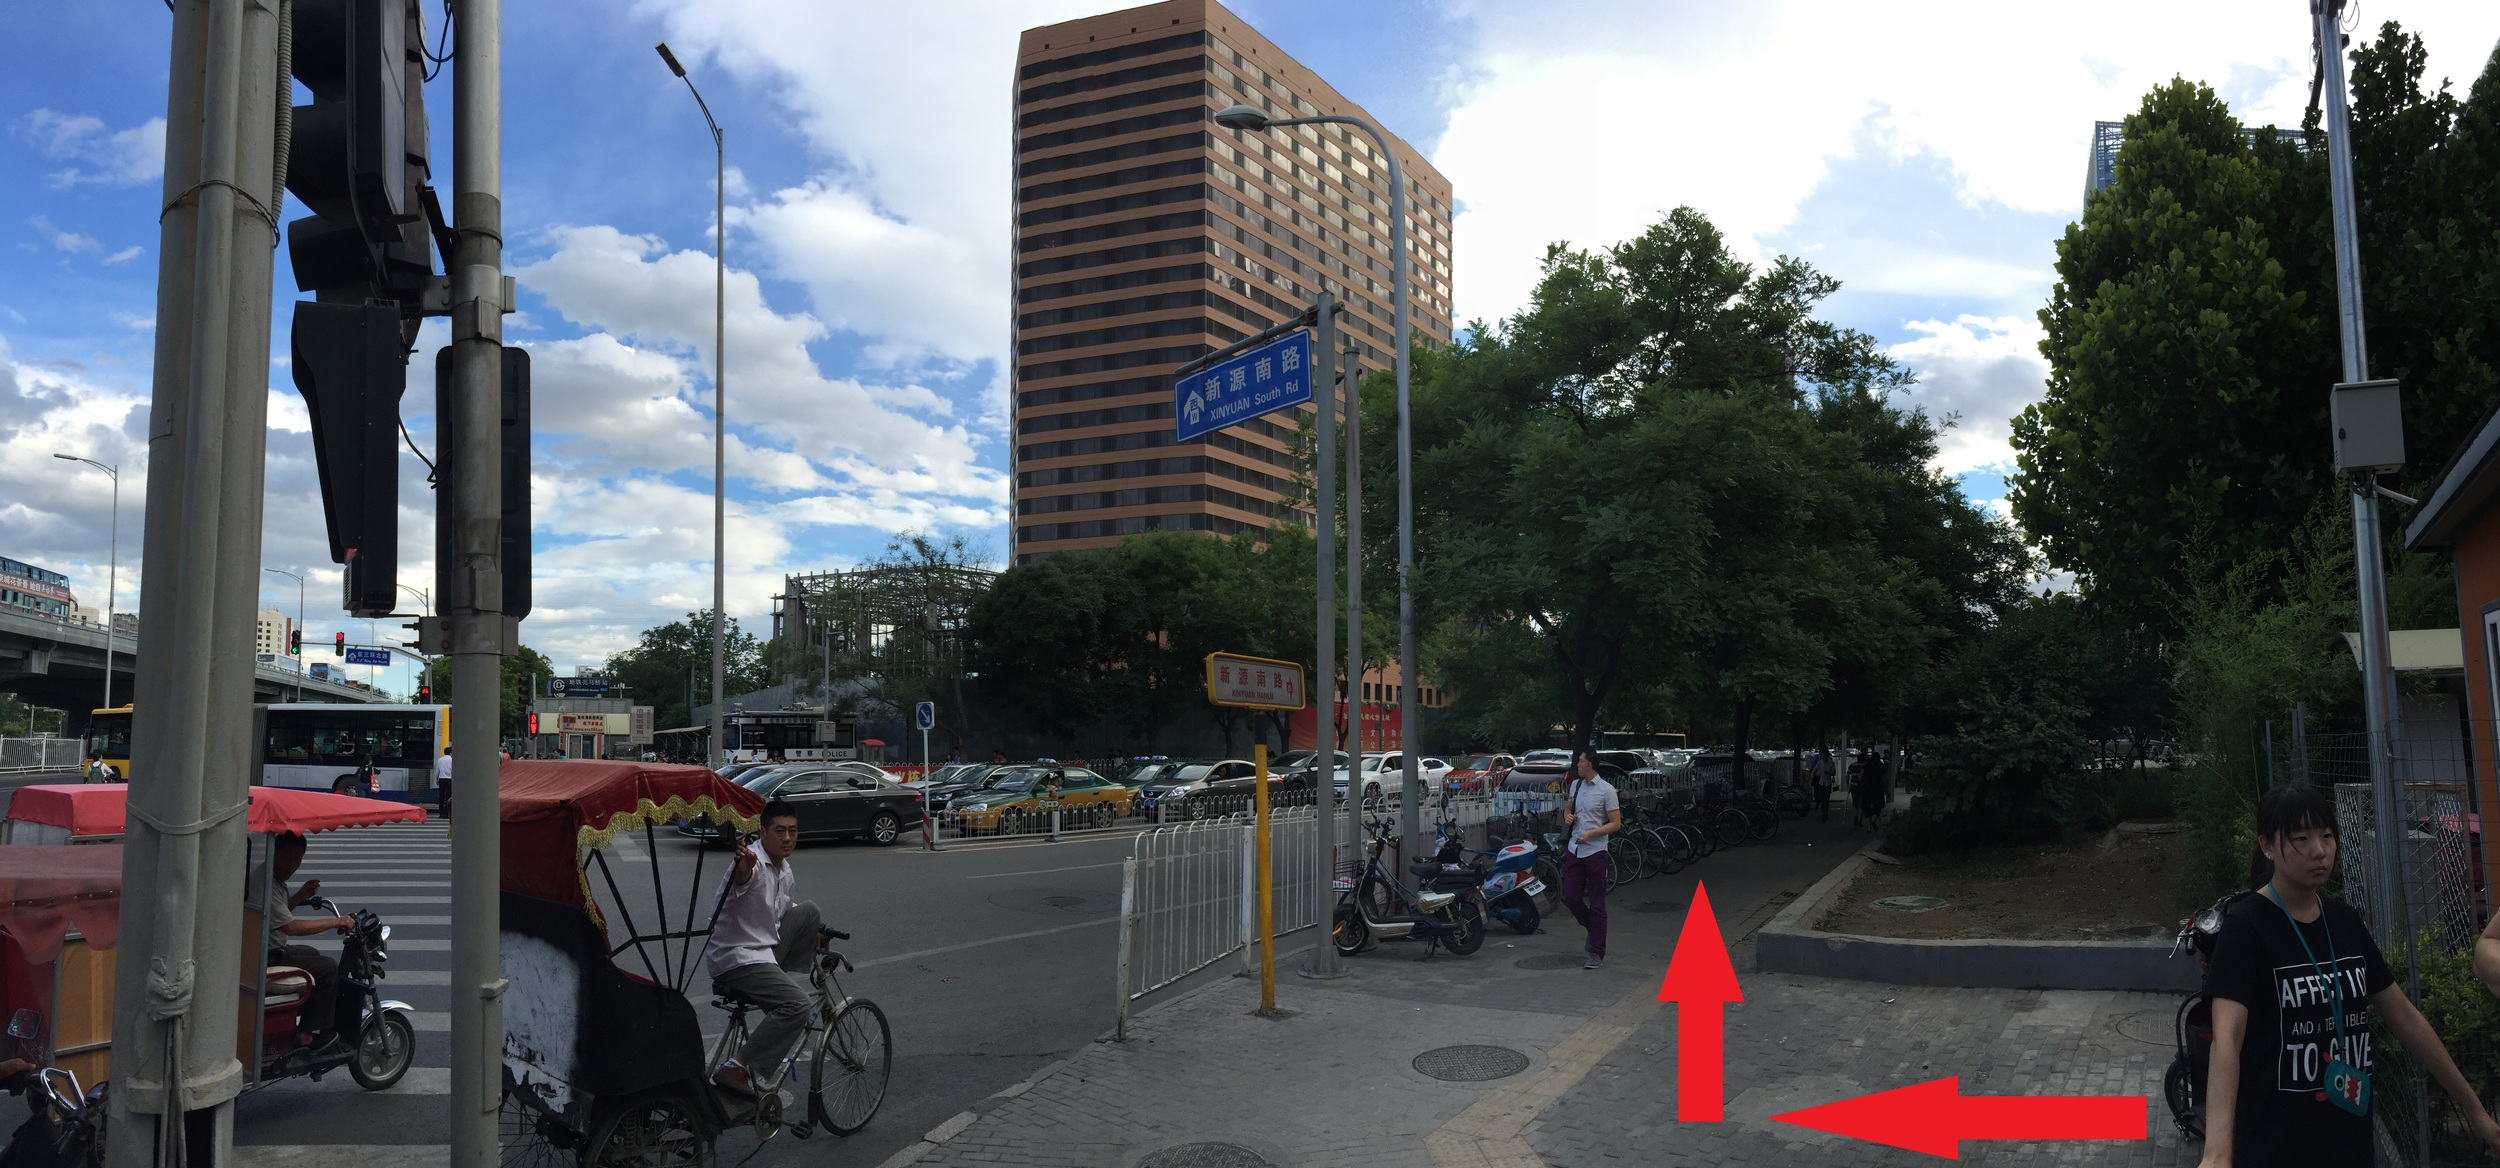 5. As you come out of the subway exit, turn right and follow the sidewalk.